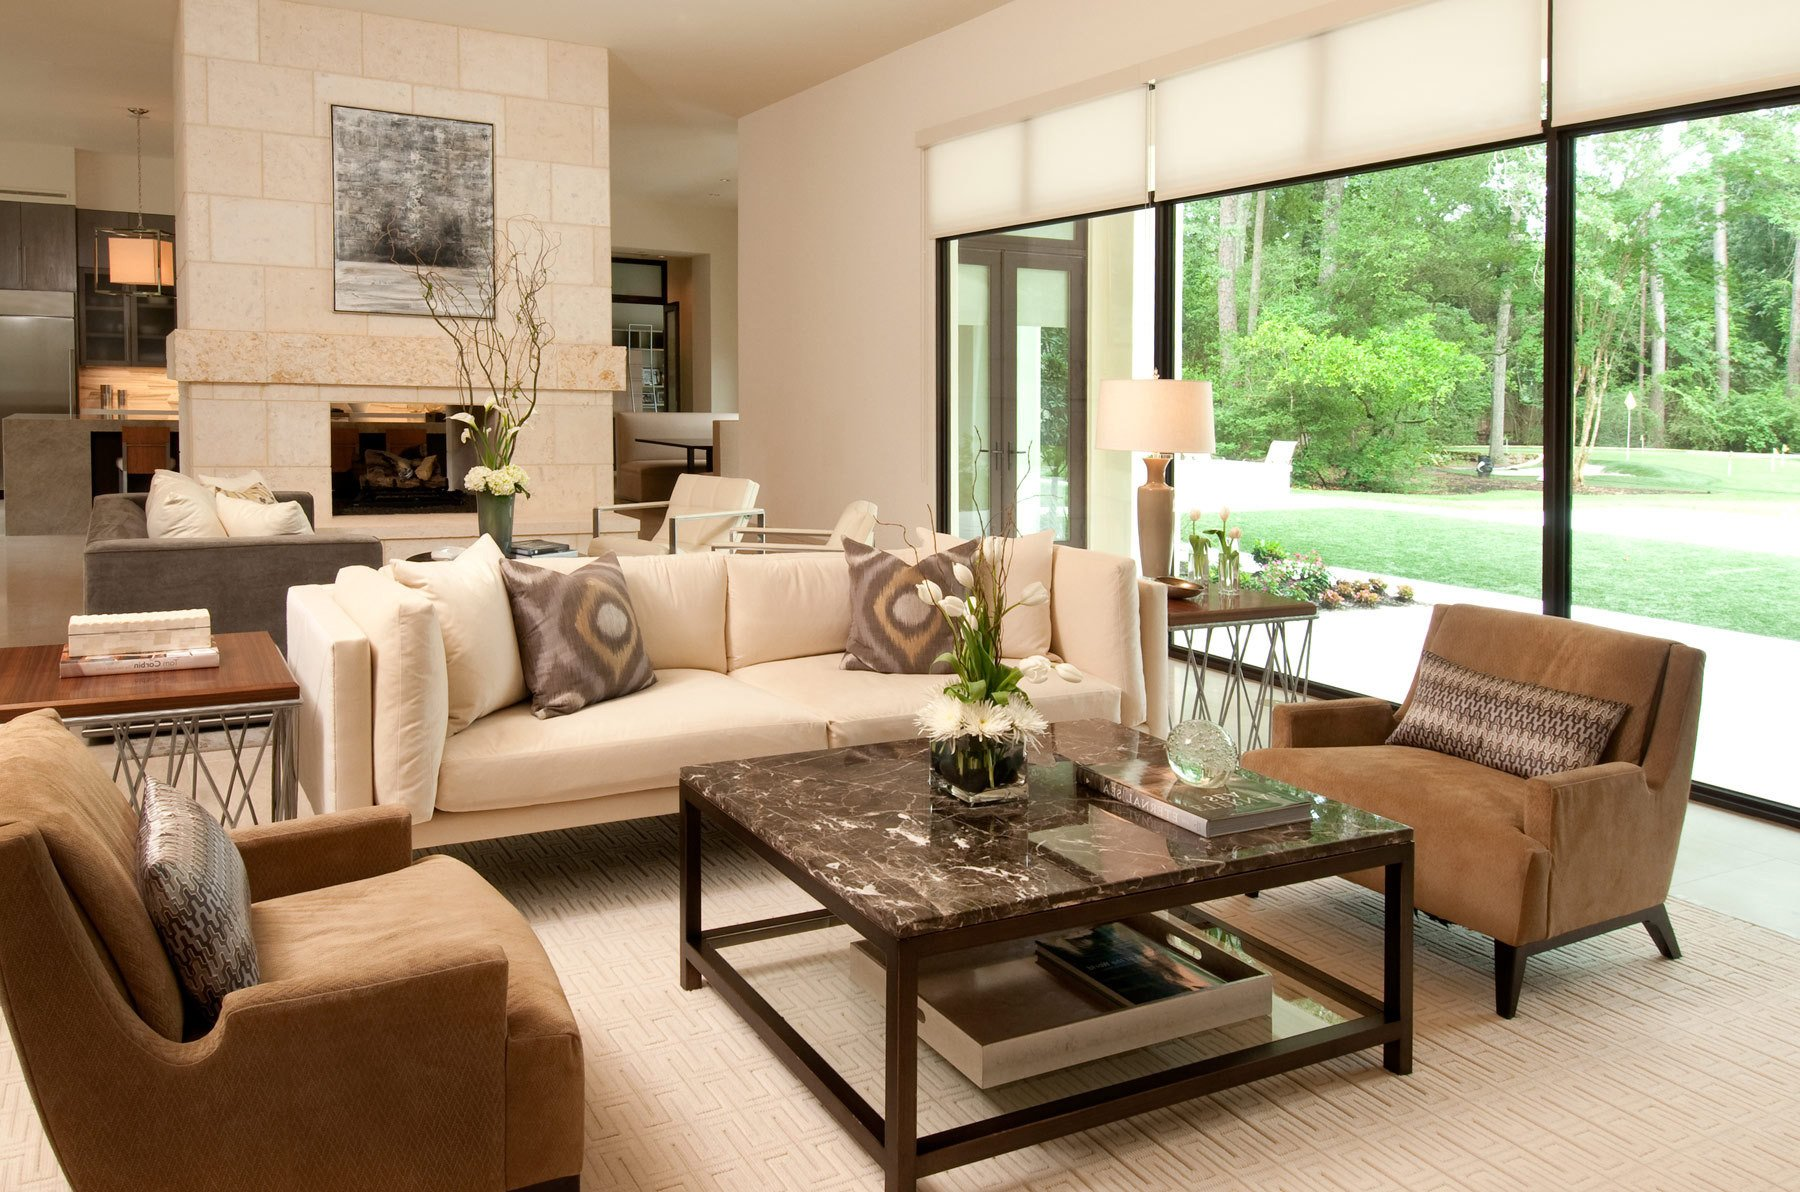 Comfortable Living Room Amazing 27 fortable Living Room Design Ideas Decoration Love